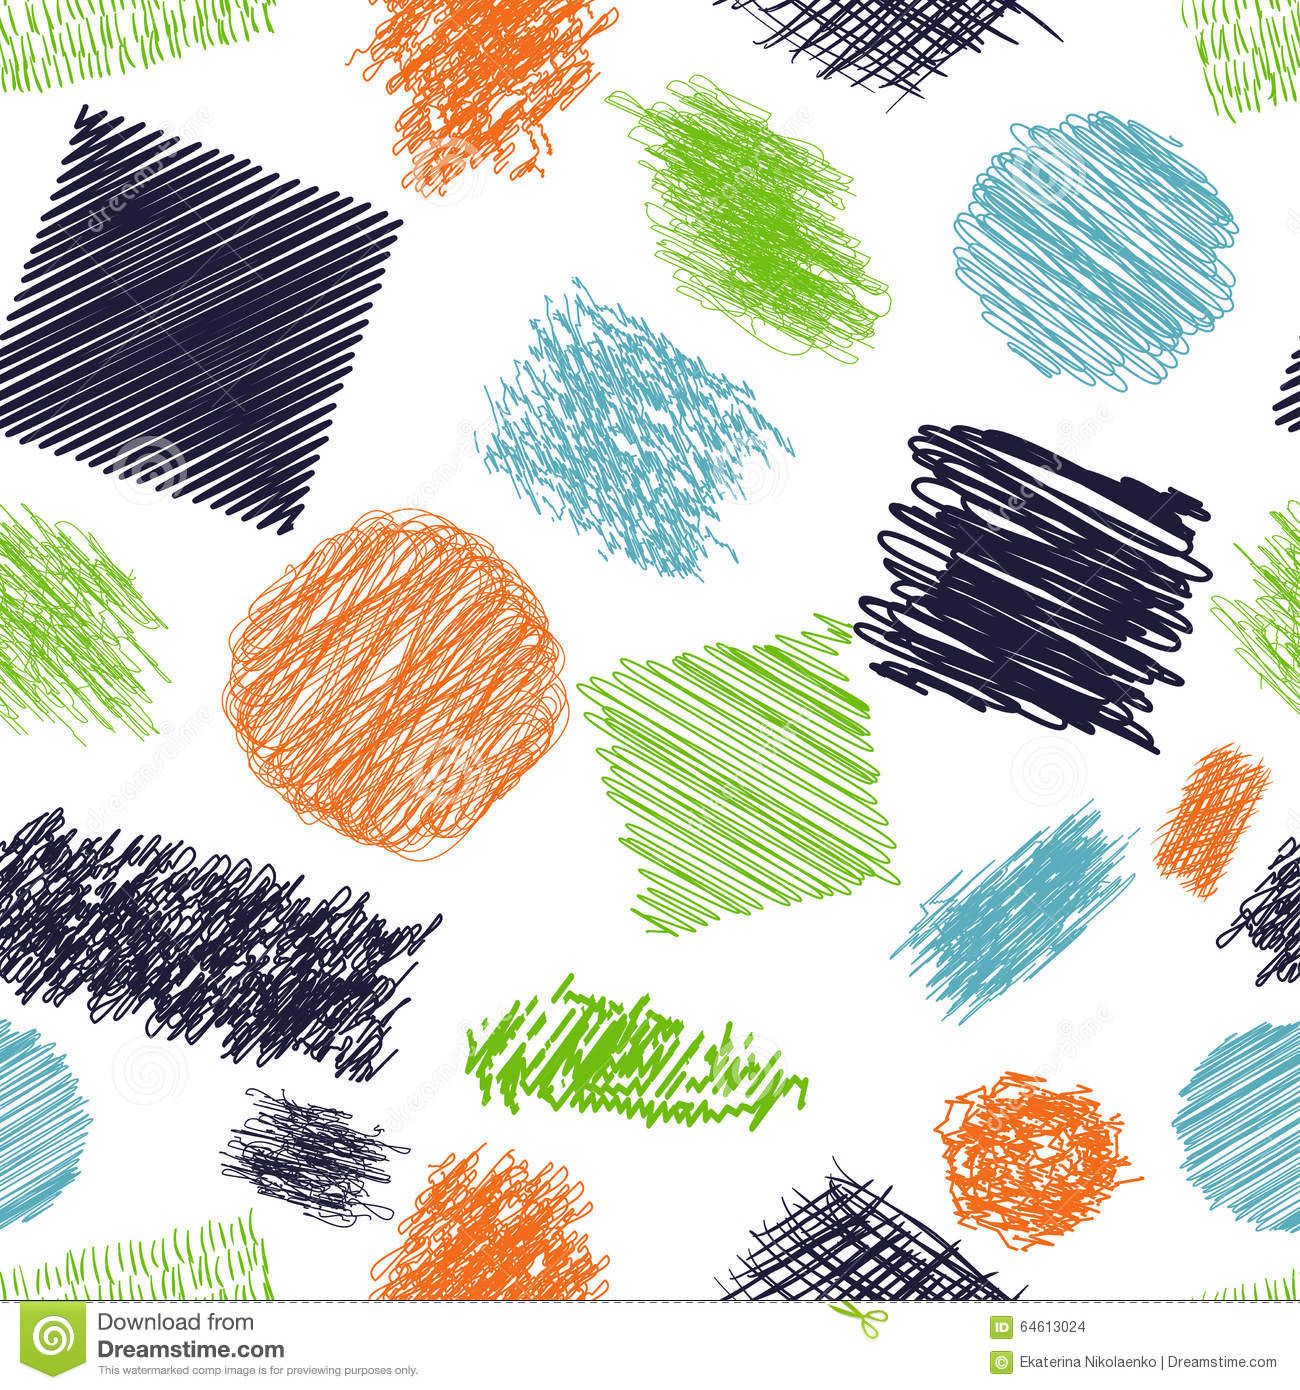 Seamless pattern with scribble brushes. Collection of ink lines, set of hand drawn textures, scribbles of pen, hatching, scratch.